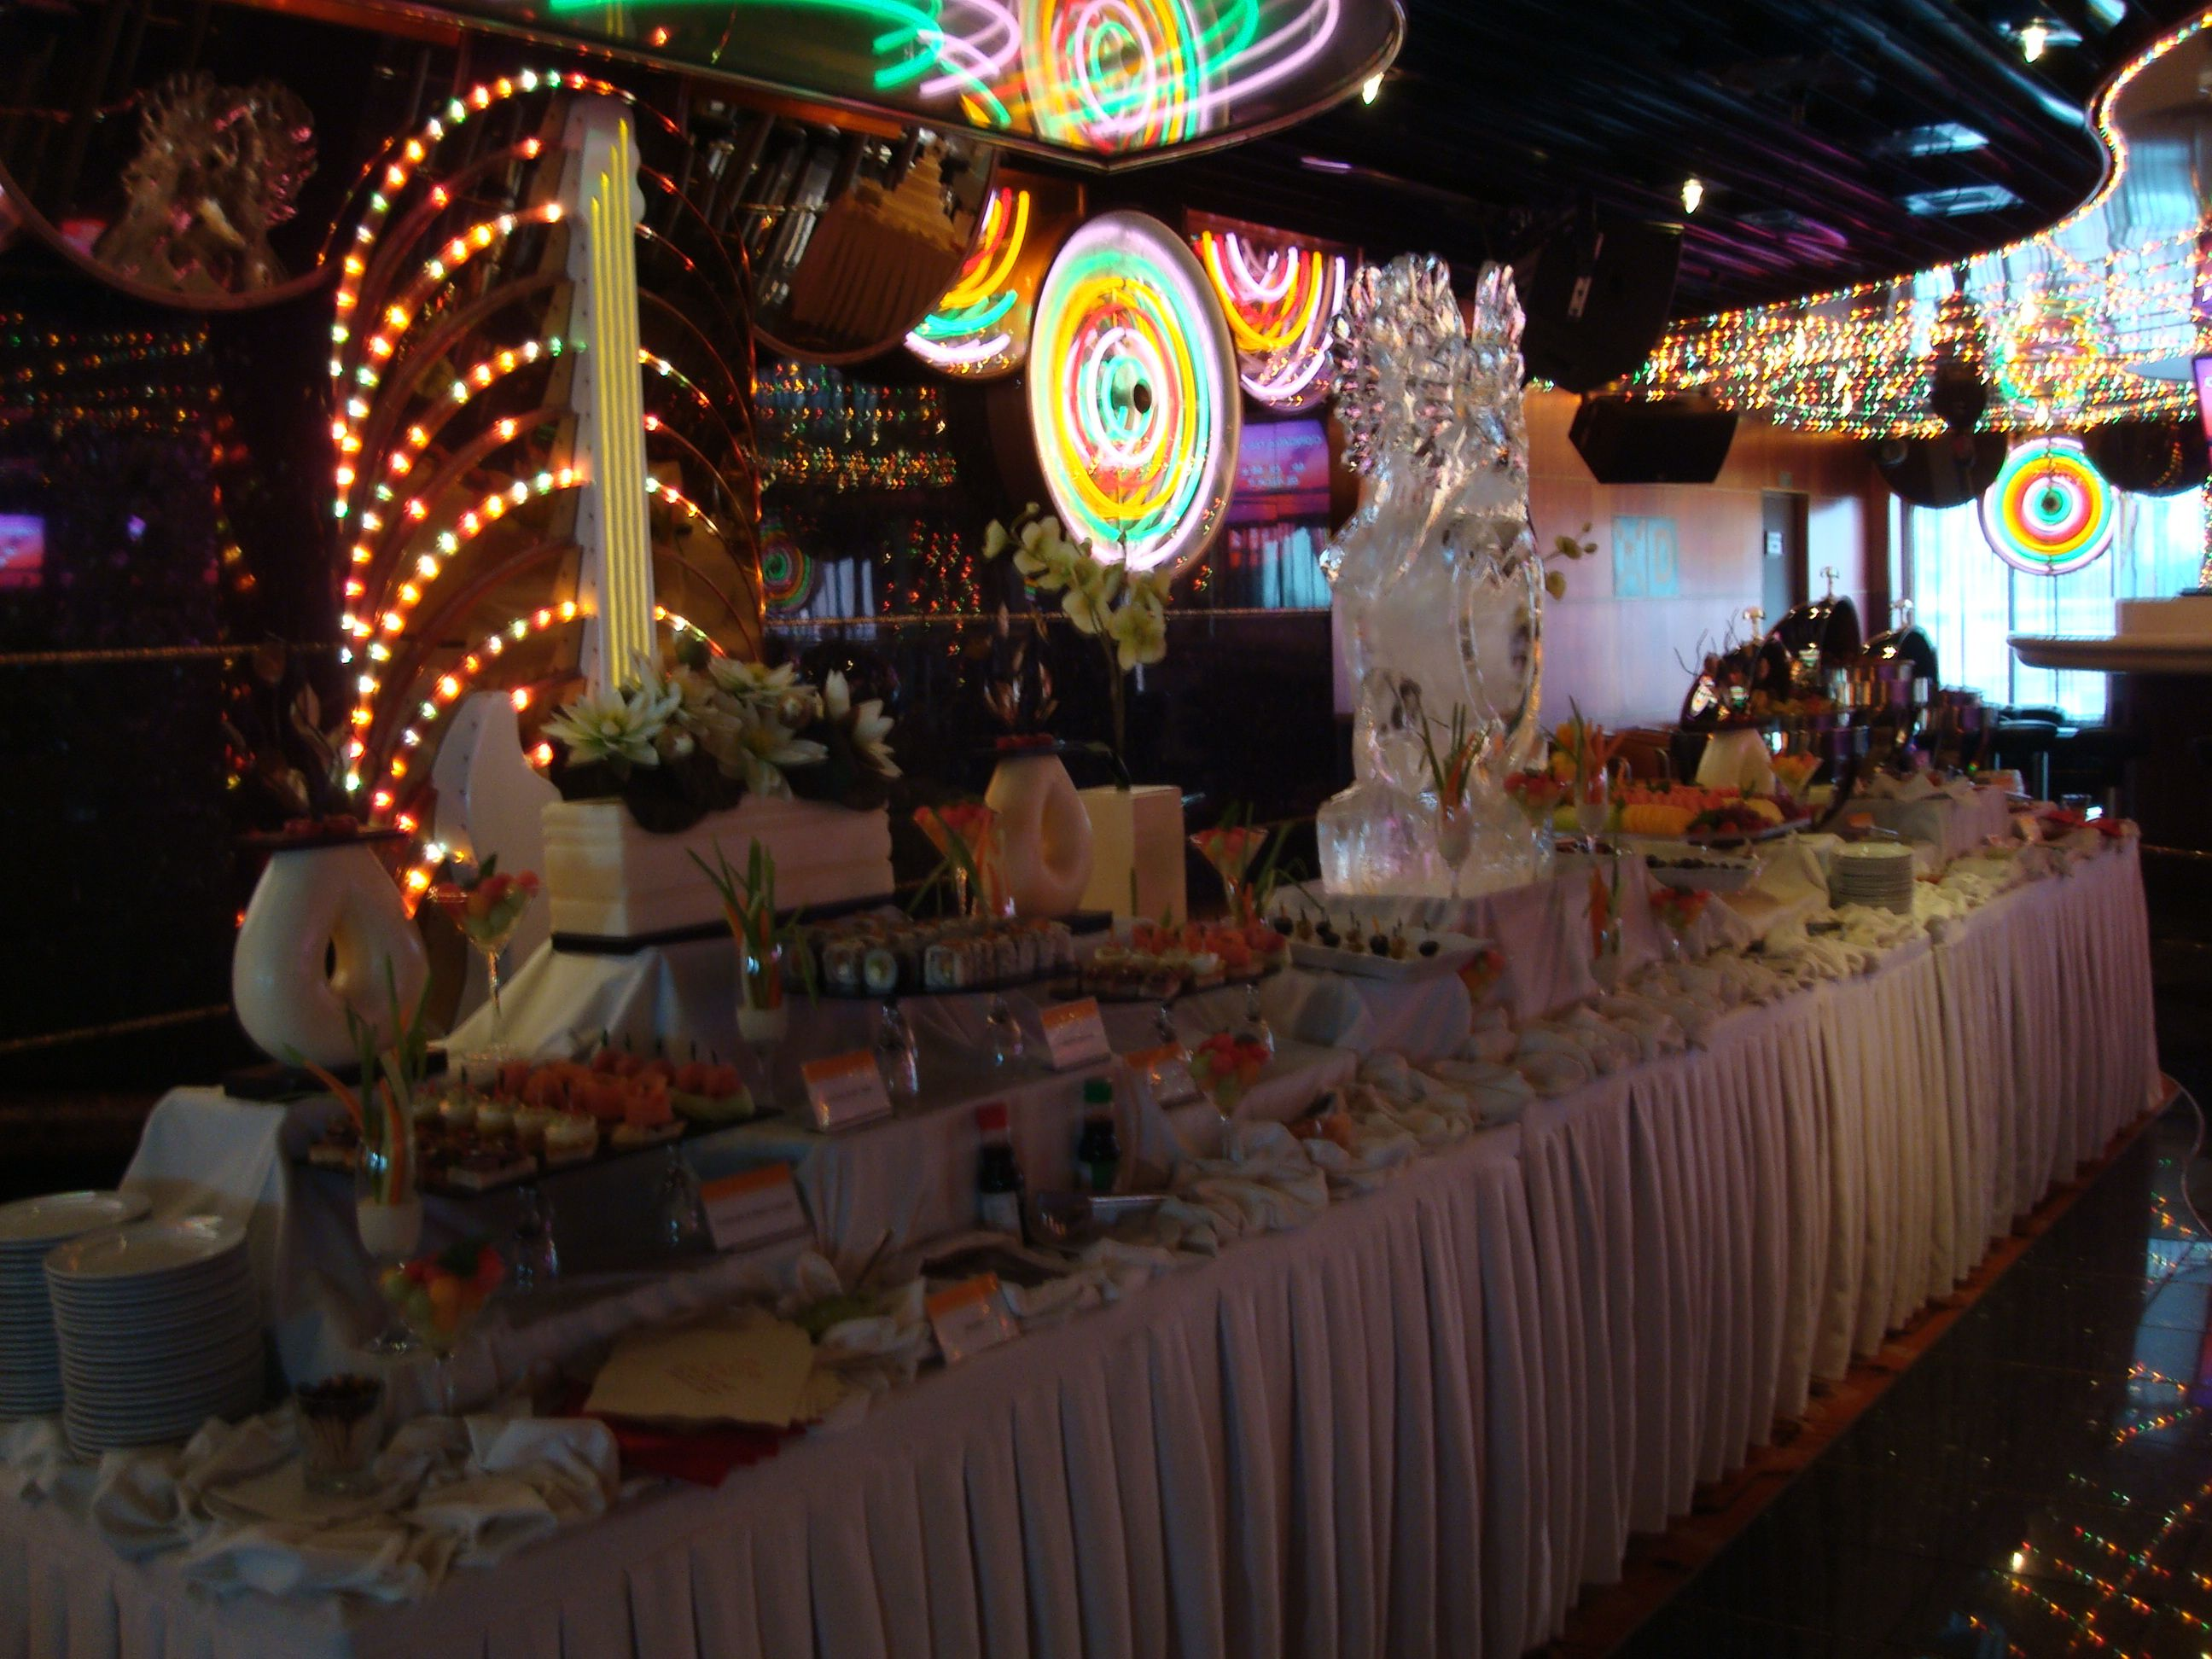 Carnival Cruise Wedding Reception Guess This What Food And Ice Sculpture Set Up Will Look Like Carnival Cruise Wedding Cruise Wedding Cruise Ship Wedding